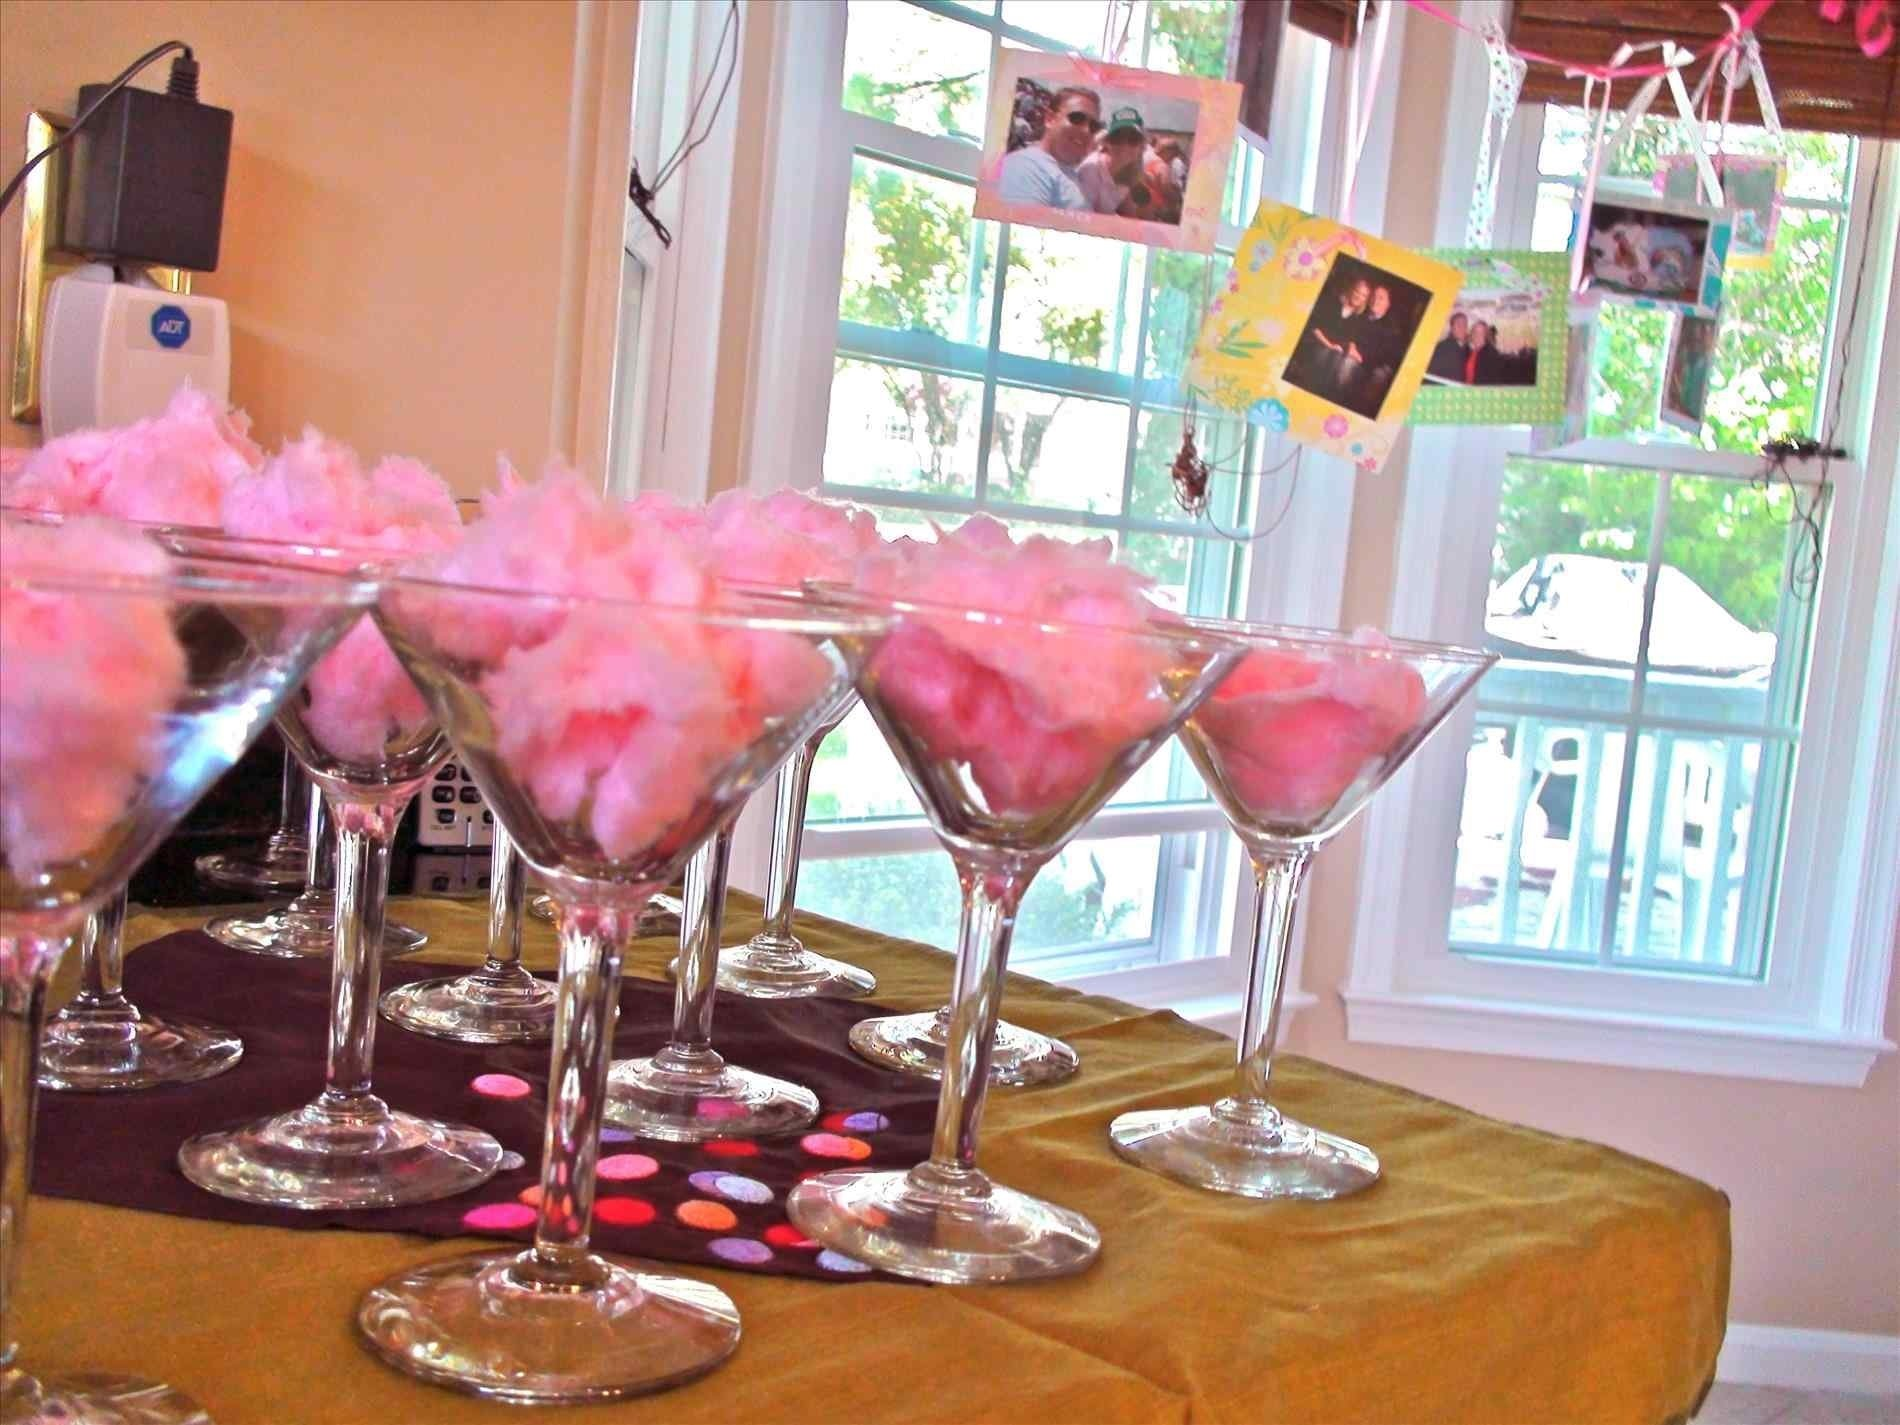 10 Famous Pink And Green Baby Shower Ideas ideas pink for decoration theme colors zebra print baby green shower 2020